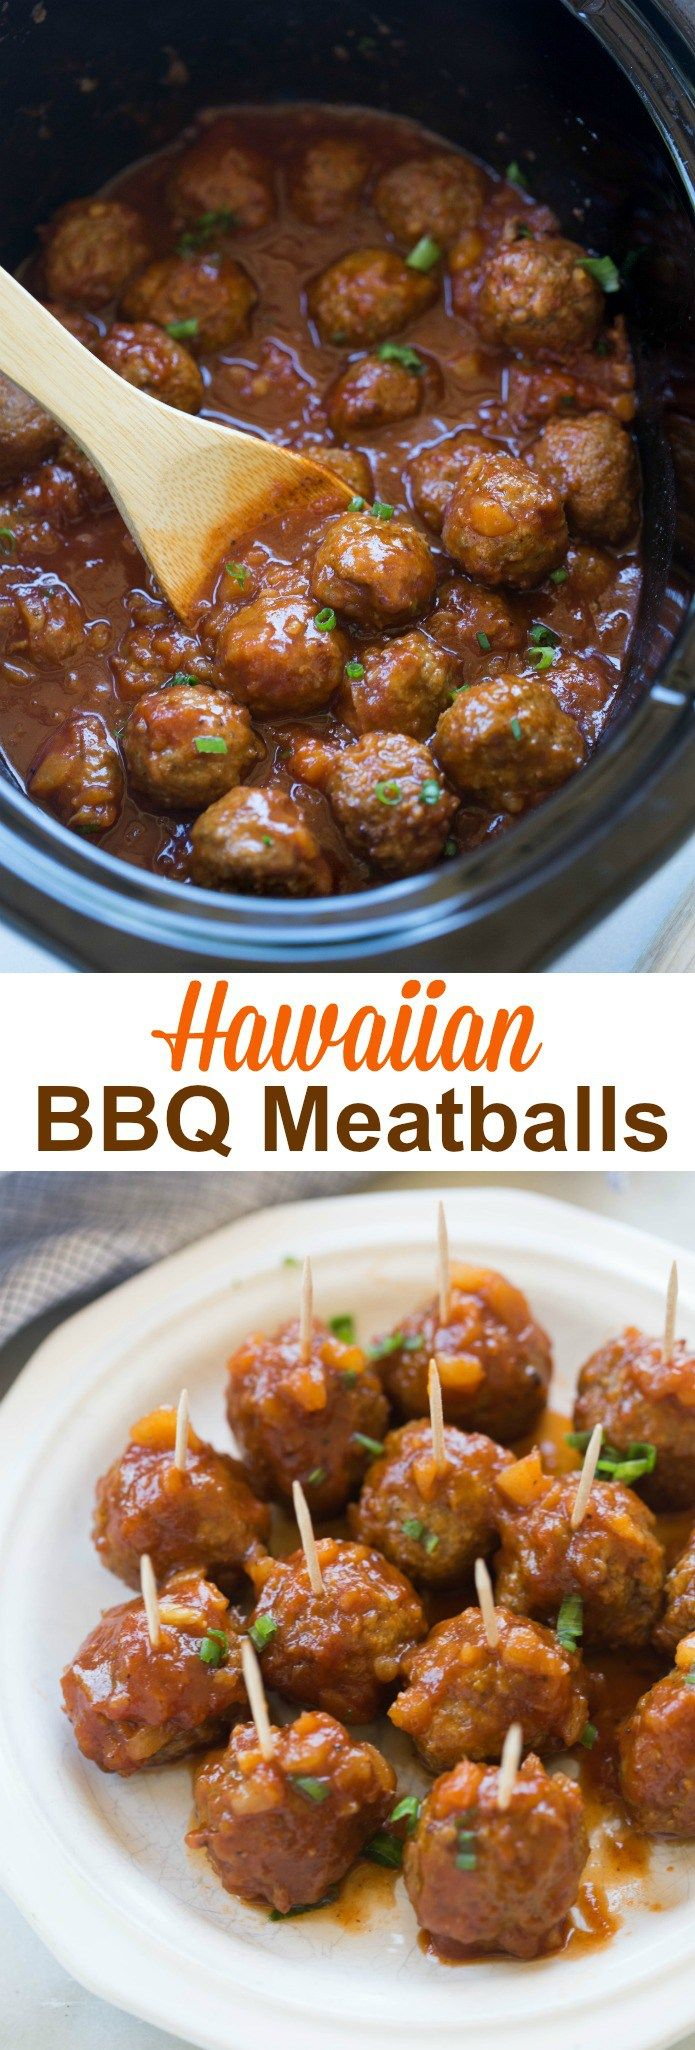 Slow Cooker OR Stovetop Hawaiian BBQ Meatballs are the perfect fun, easy party appetizer or enjoy them as a main dish, served over rice.   tastesbetterfromscratch.com